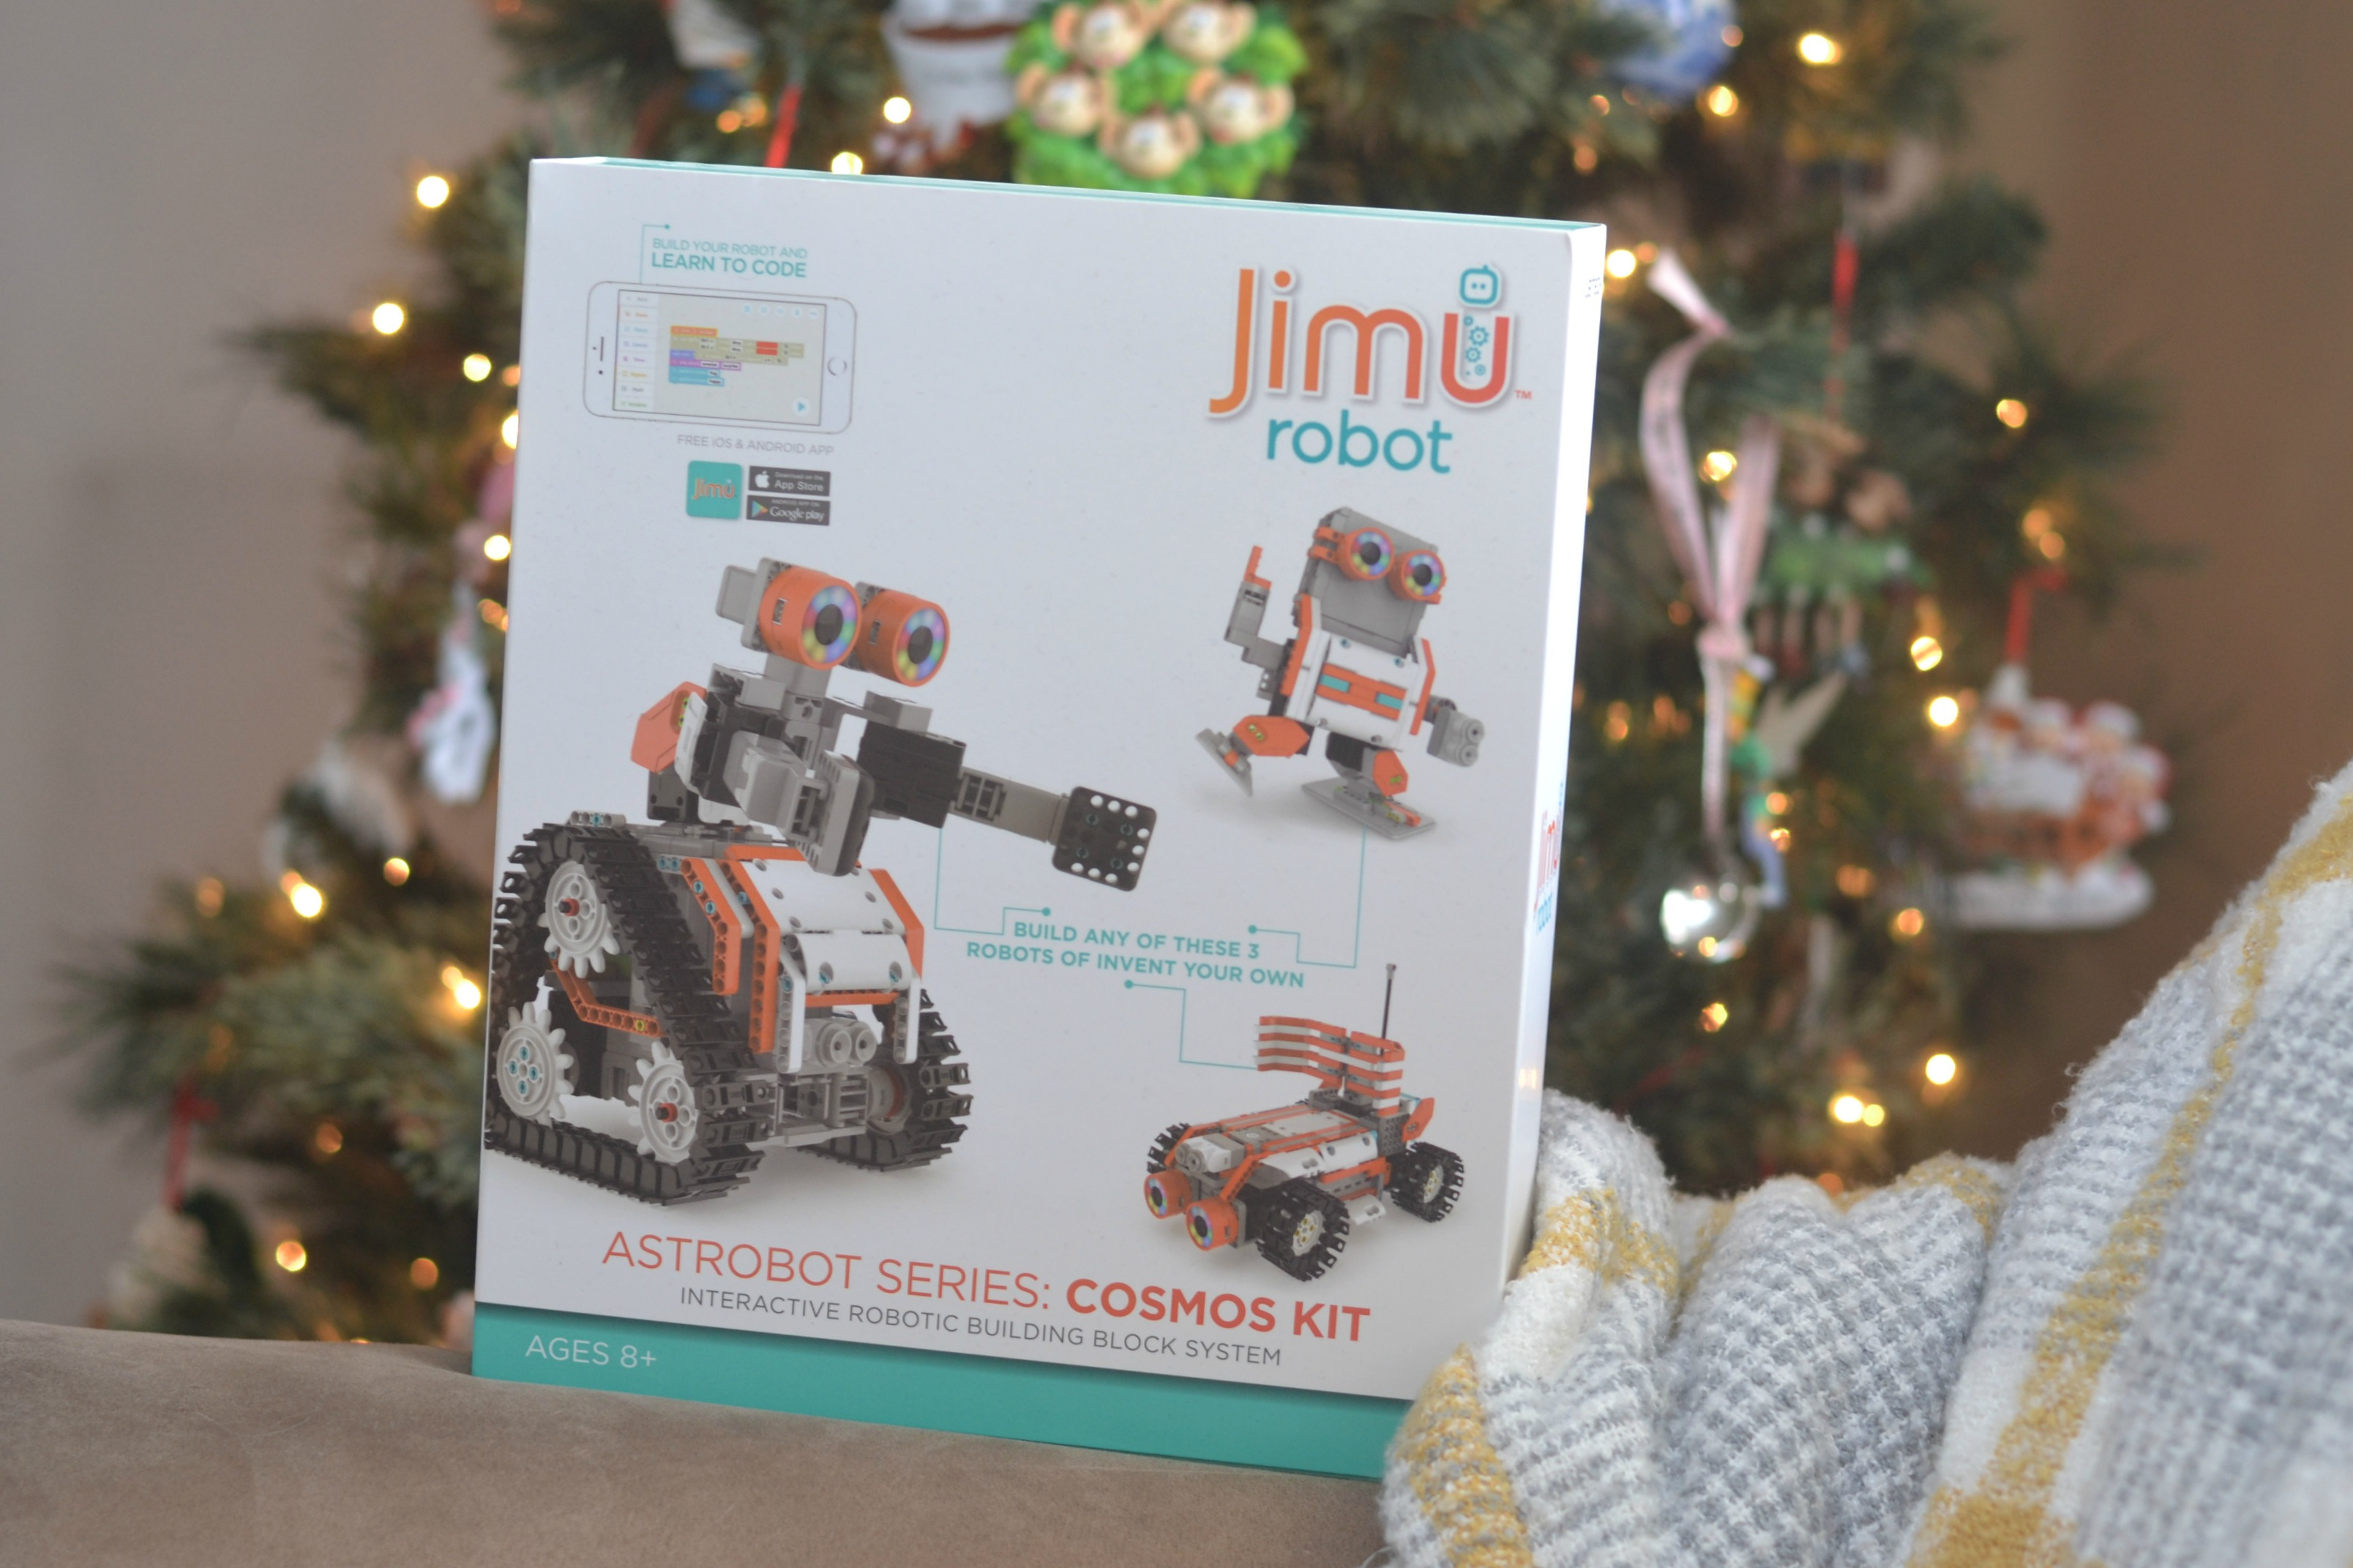 Teach kids coding, coding for kids, how to teach kids how to code, technology for kids, Learn how we can Teach coding with JIMU Robot. JIMU Robots are a fun way to bring robotics into kid's day to day and make the perfect gift you can feel good about gifting to the children in your lives this holiday season!